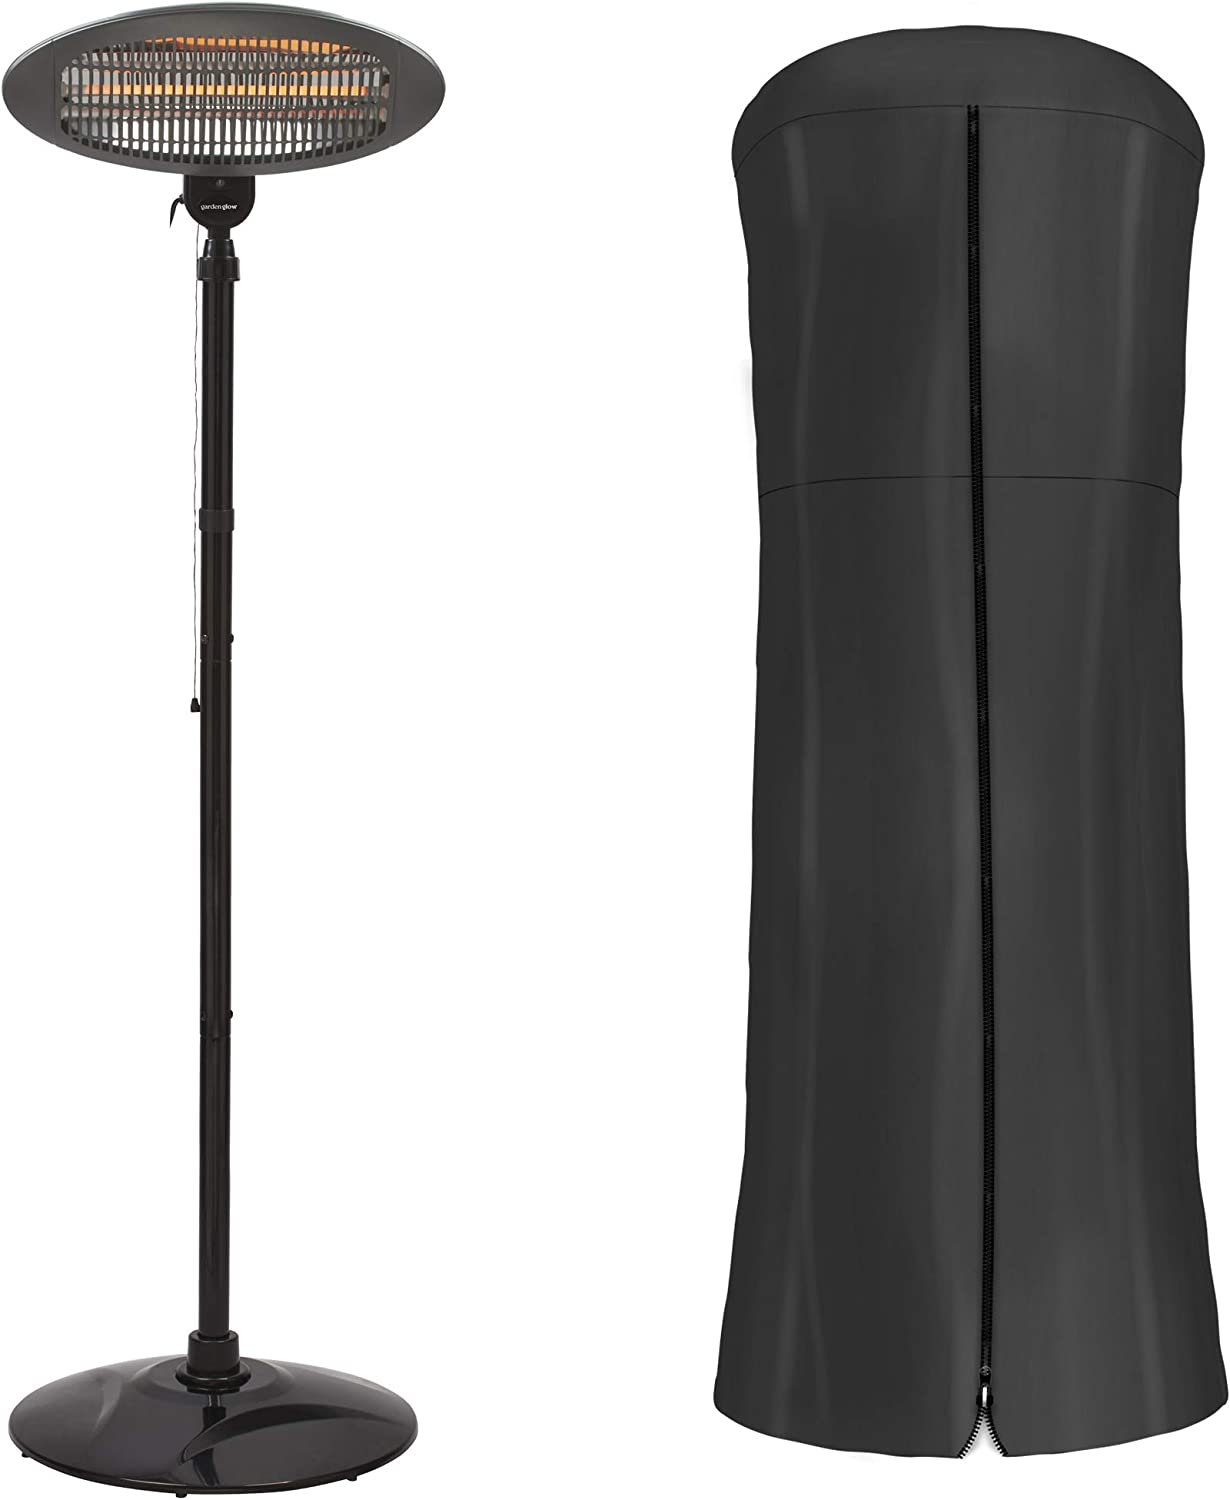 Garden Glow Electric Patio Heater Cover Infrared Garden Outdoor Free Standing With 3 Power Settings 2000w Amazon Co Uk Garden Outdoors